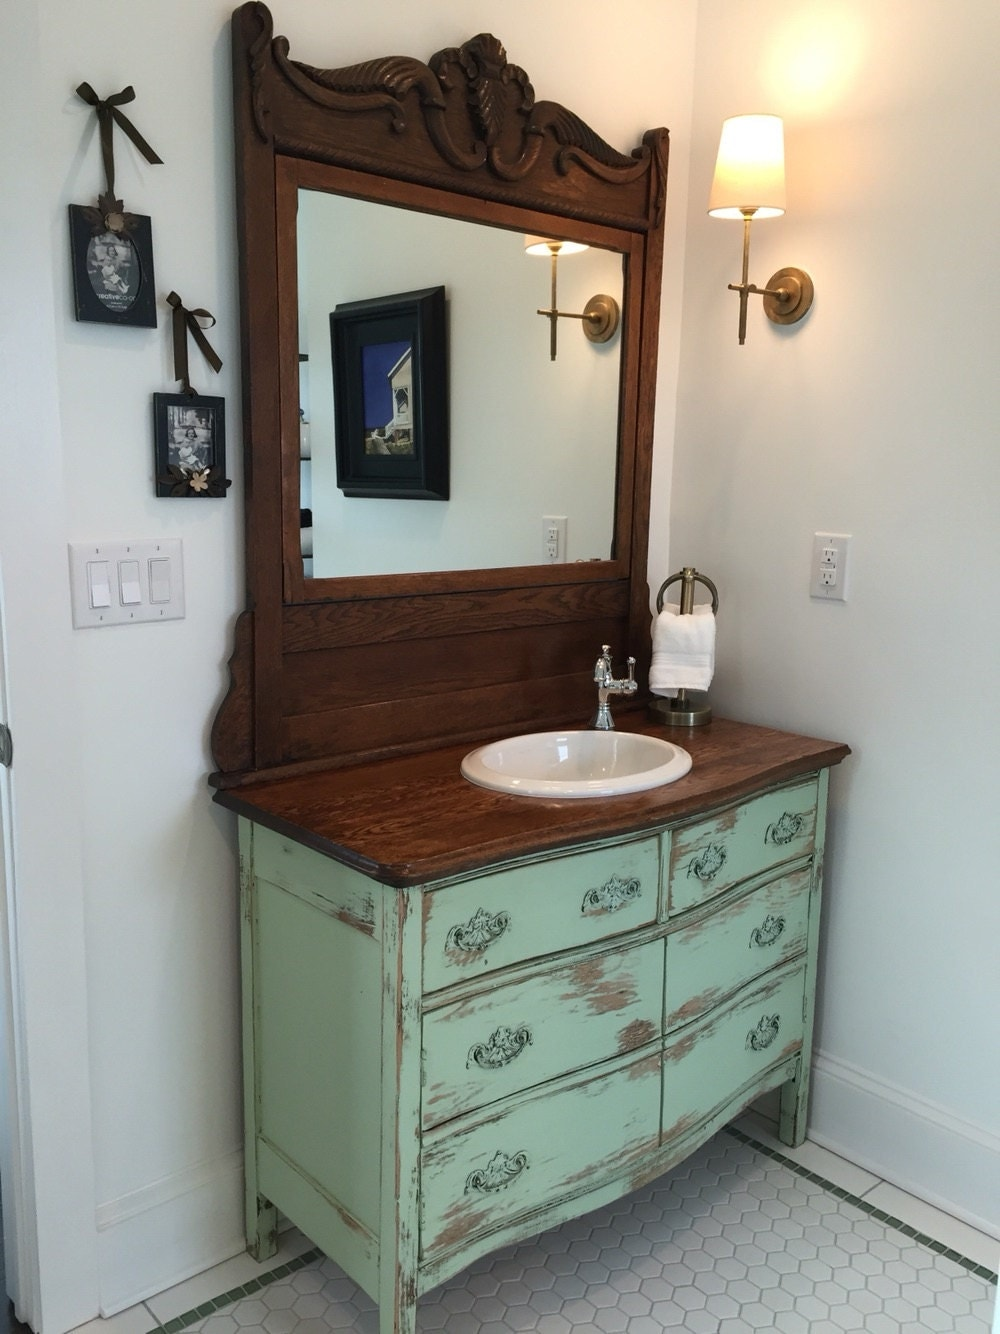 Bathroom Vanity From Antique Dresser We Find Restore